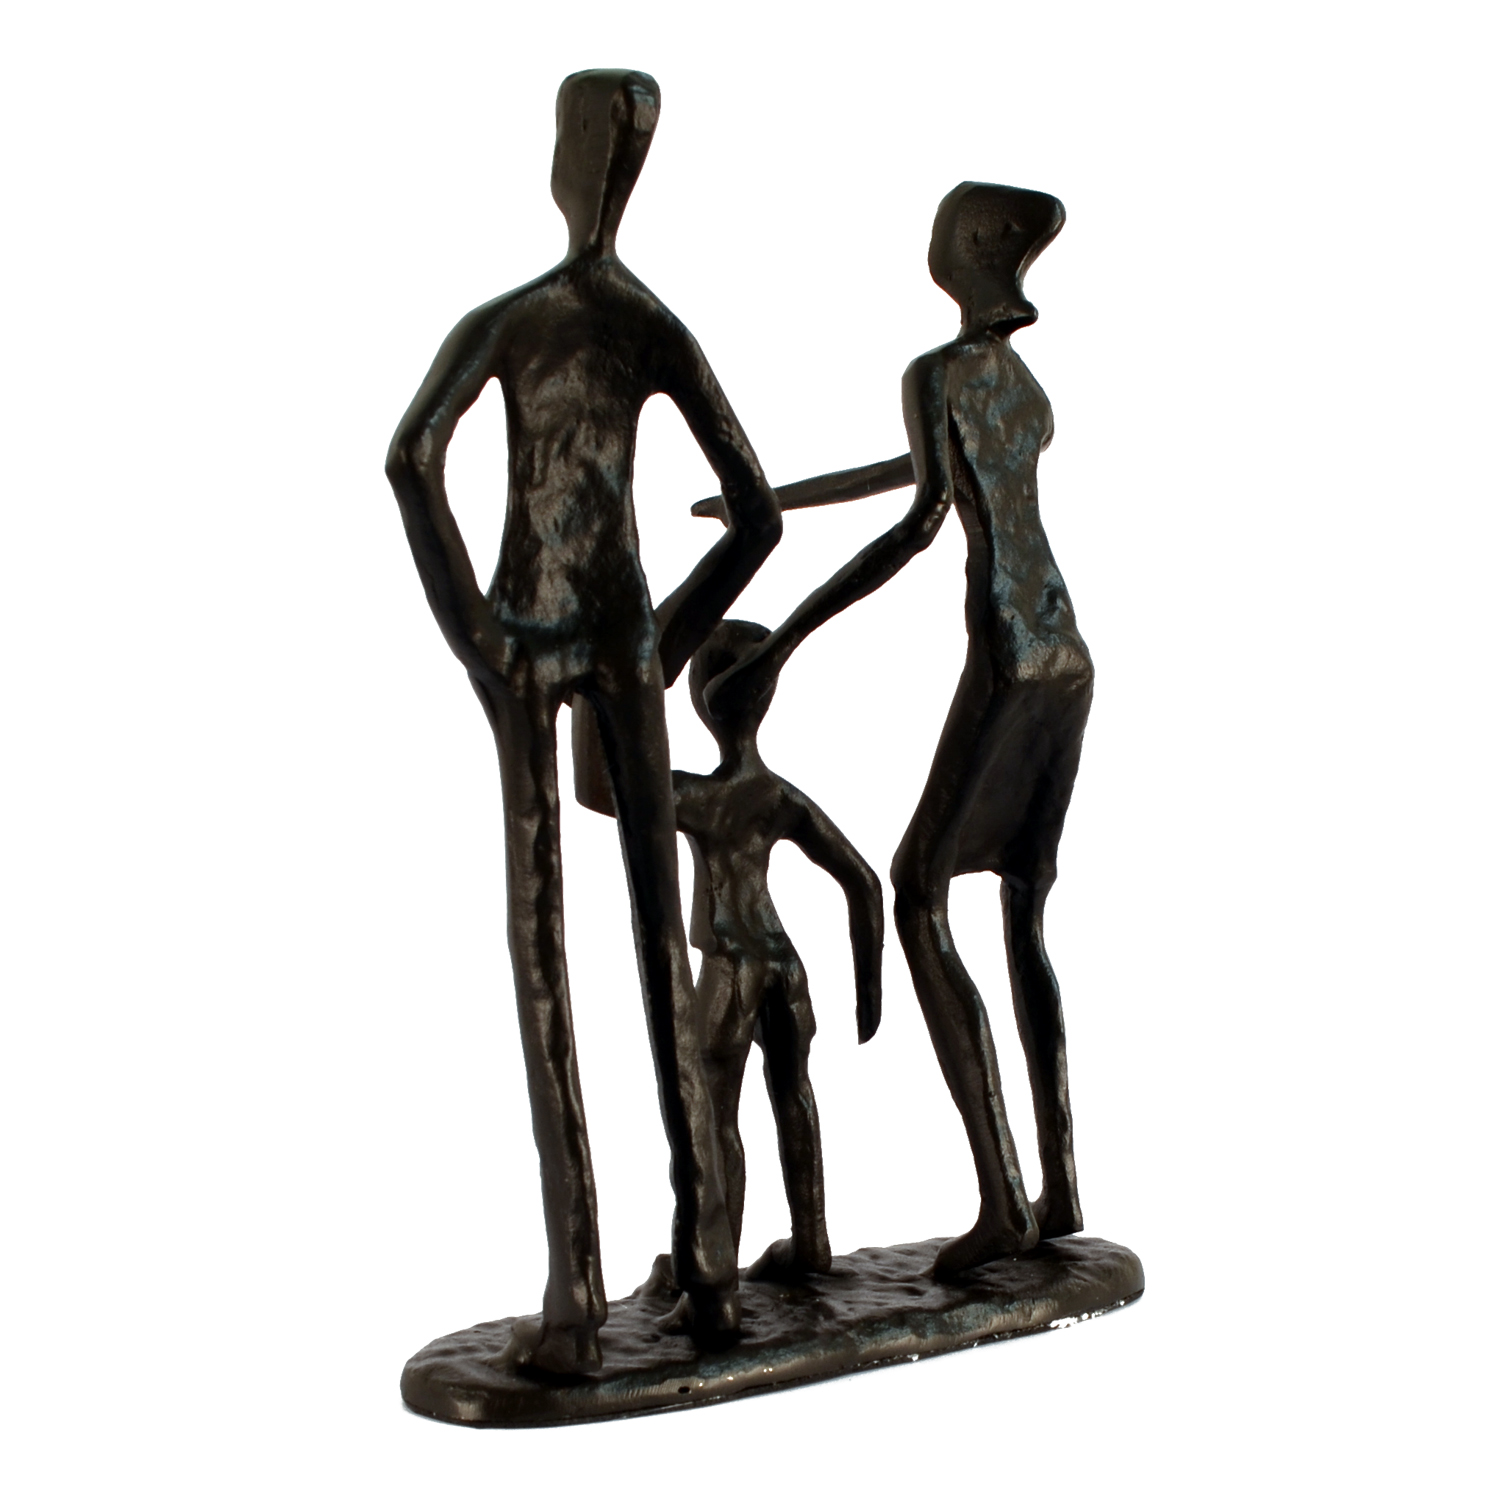 Elur Family 3 Outing Iron Status Figurine 19cm in Mocha Brown - Ruby's Garden Boutique